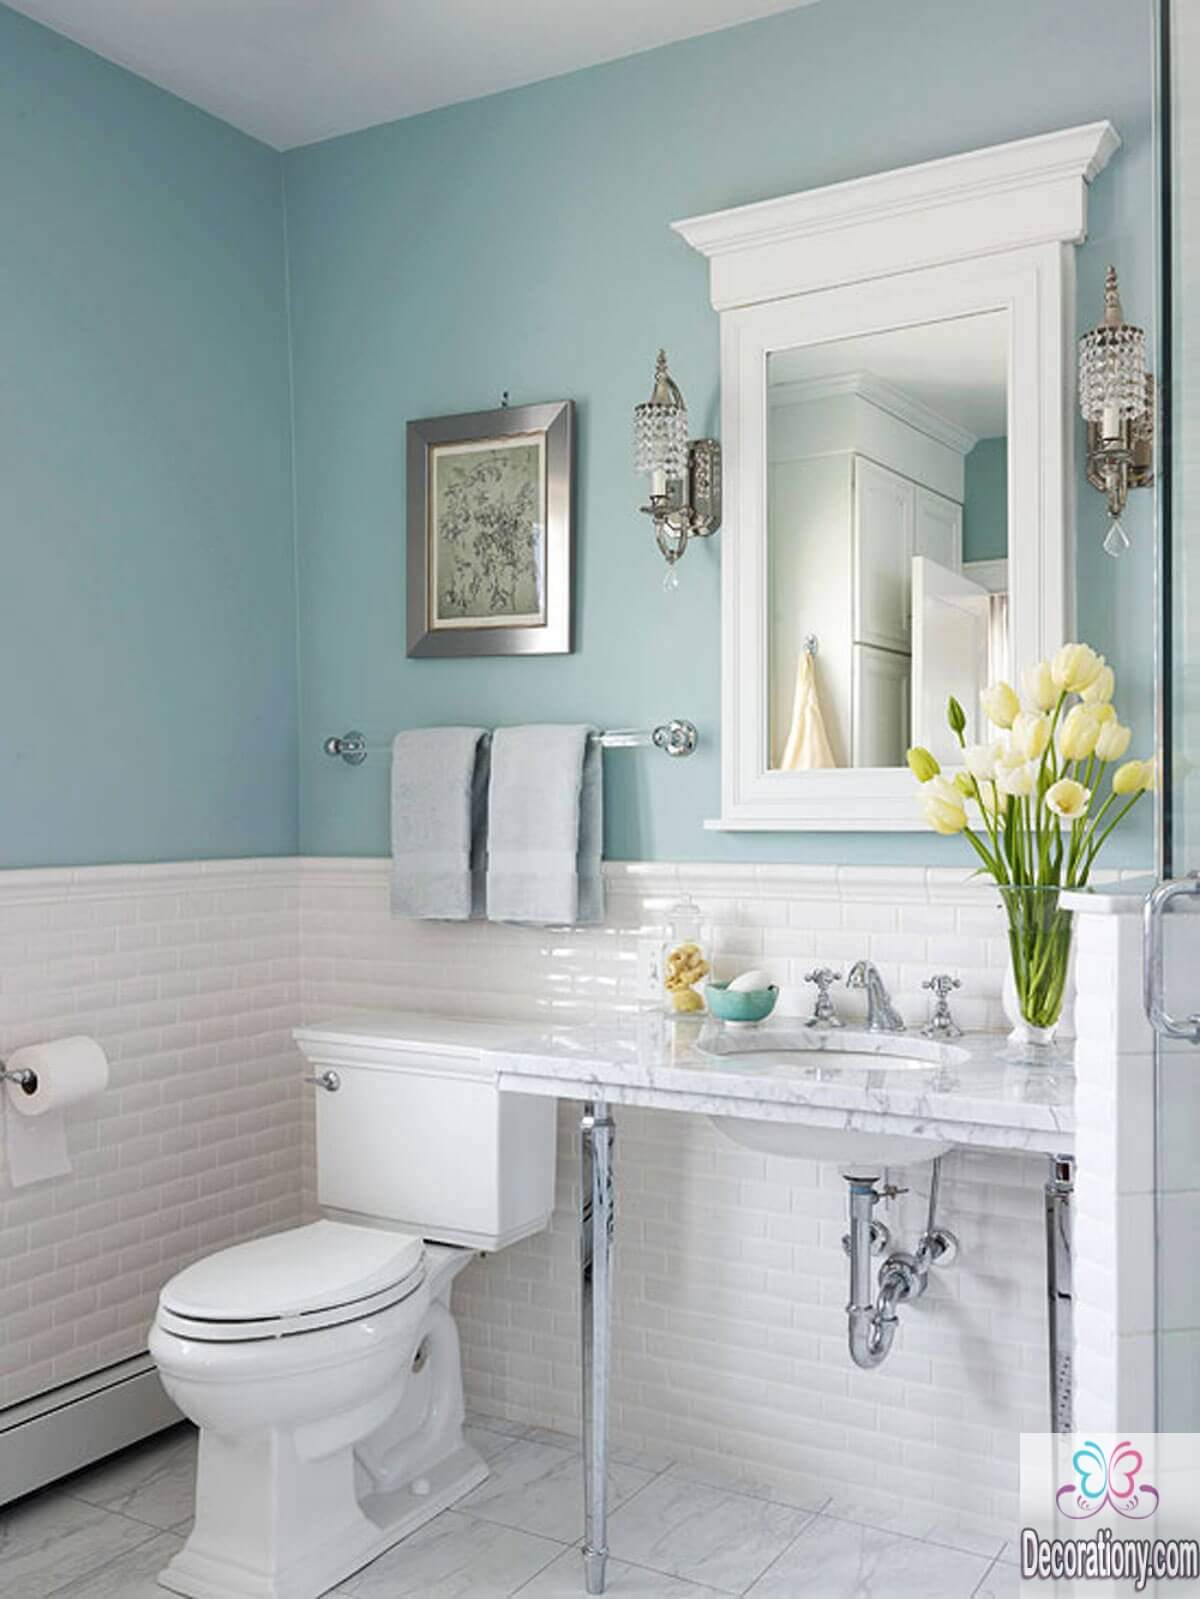 10 affordable colors for small bathrooms decoration y for Design your bathroom